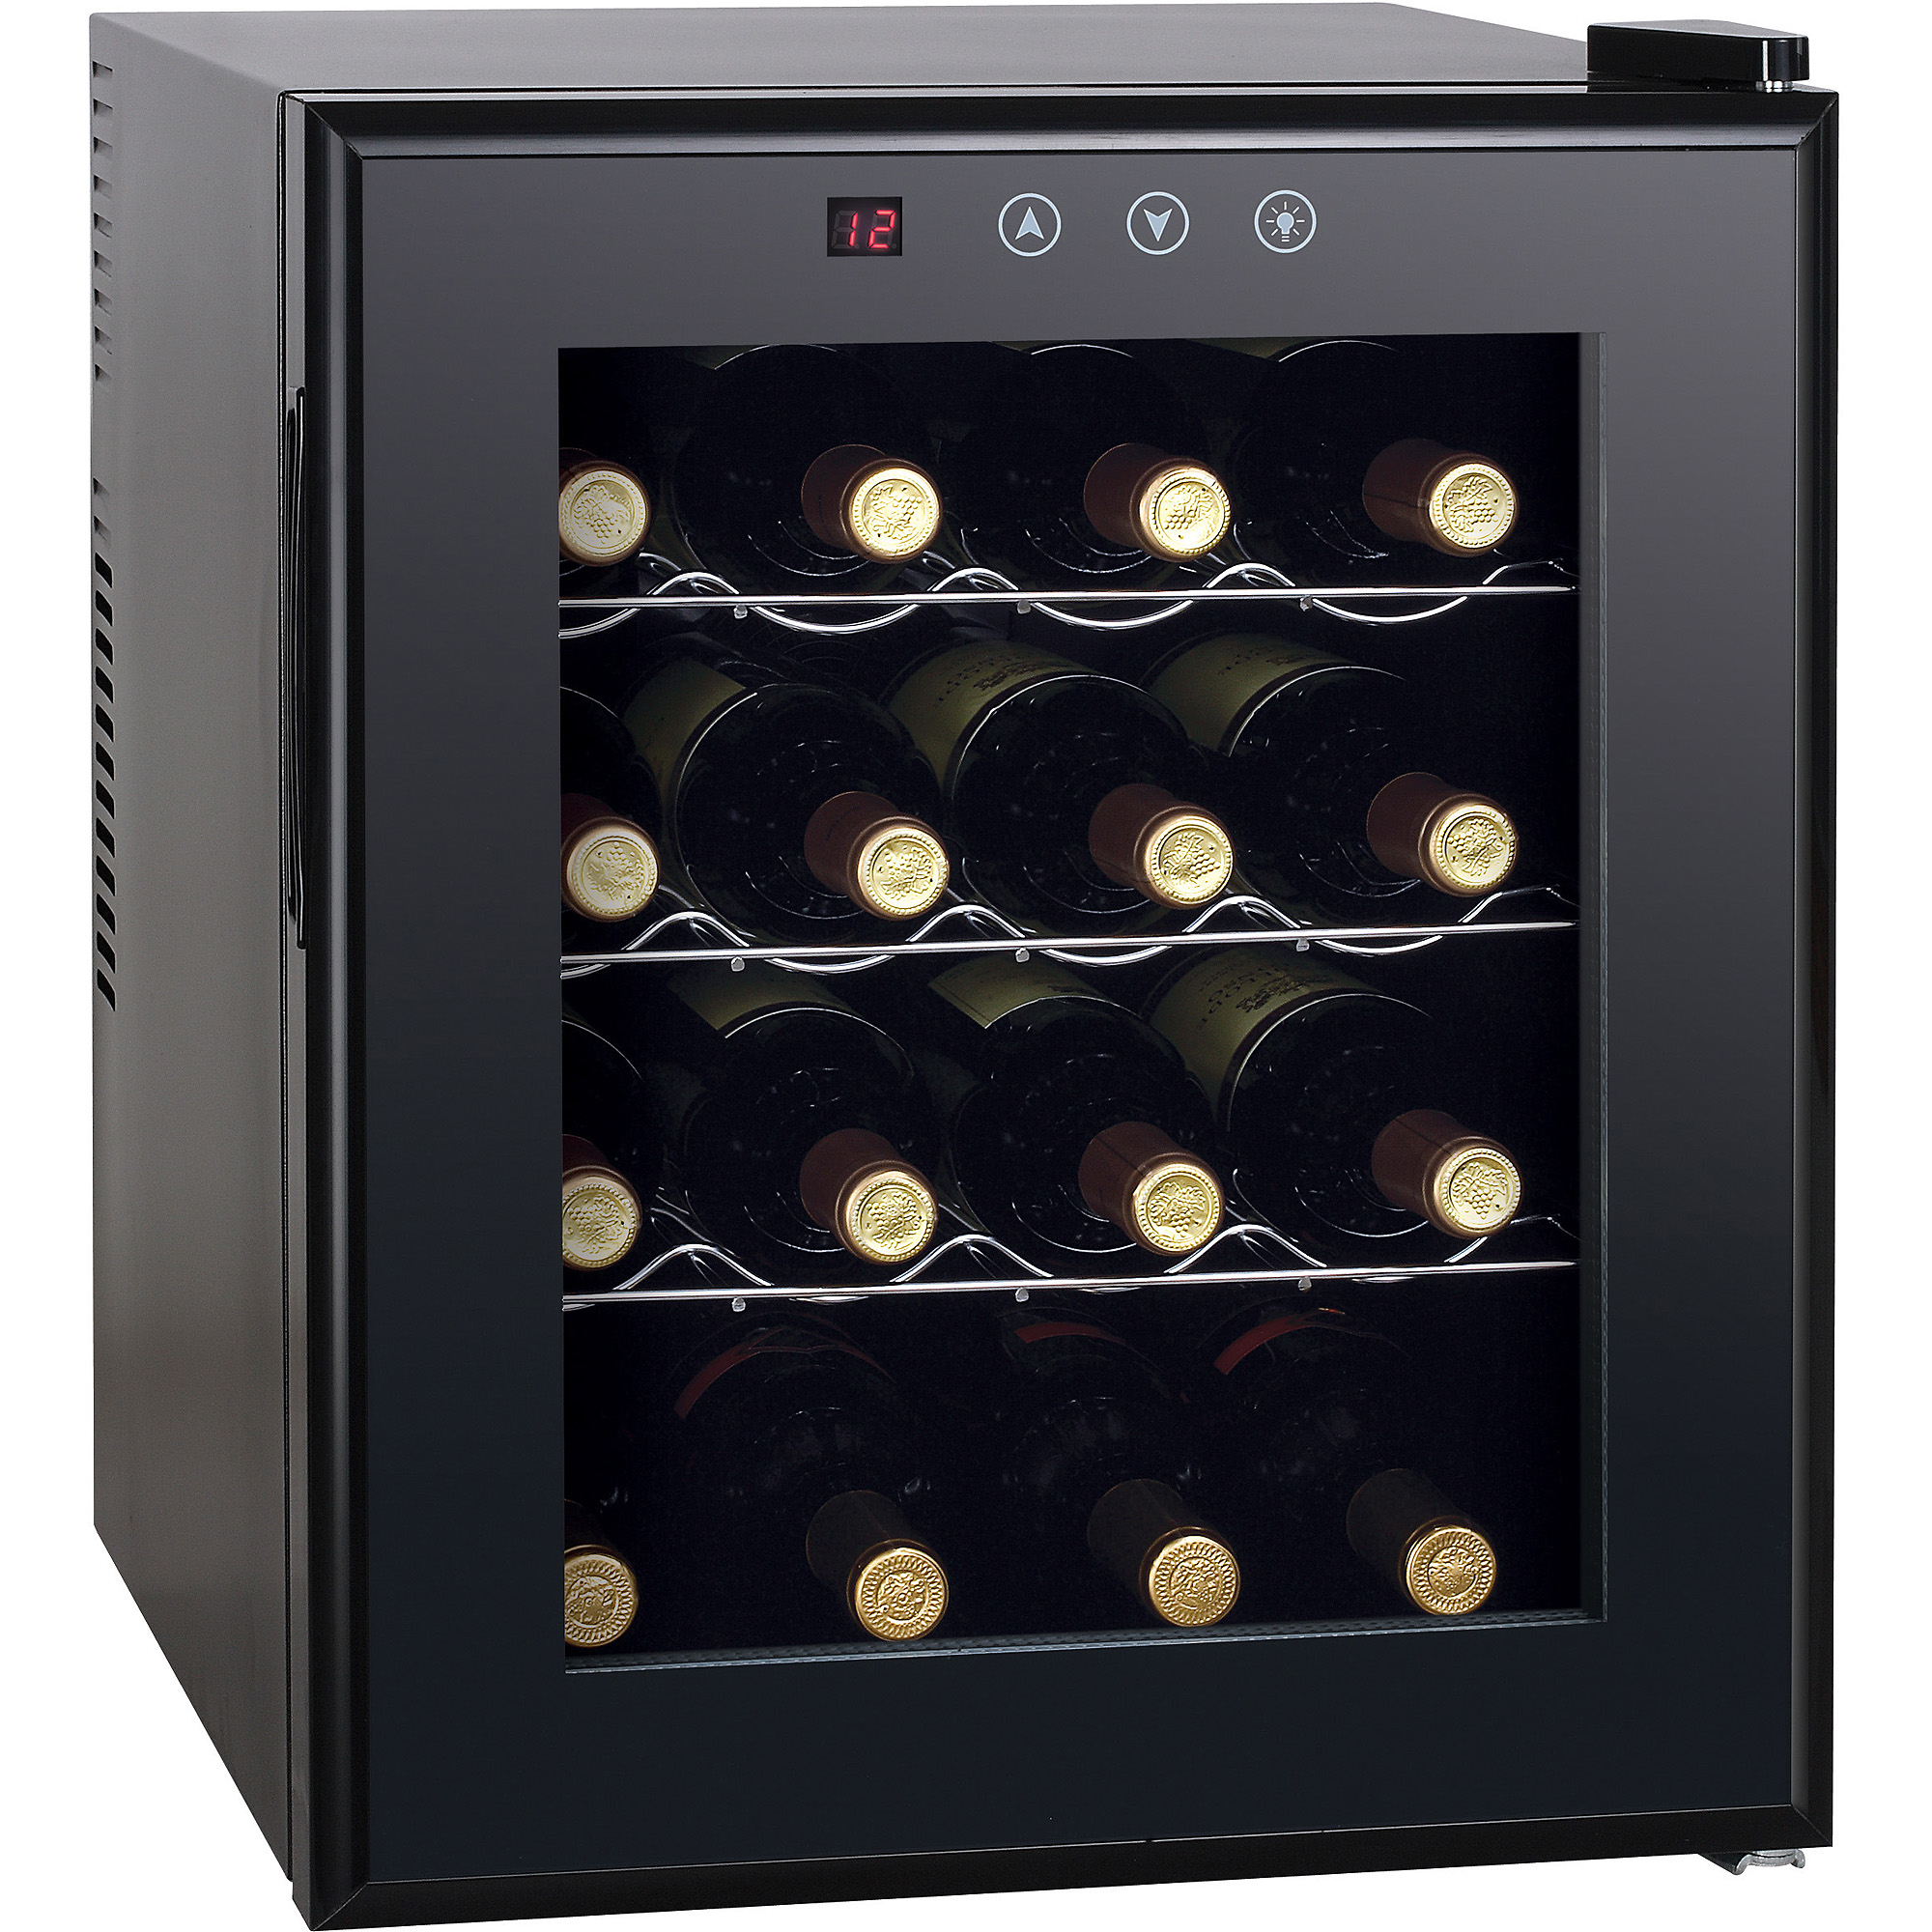 Sunpentown 16 Bottle Thermo-Electric Wine Cooler with Heating, Black